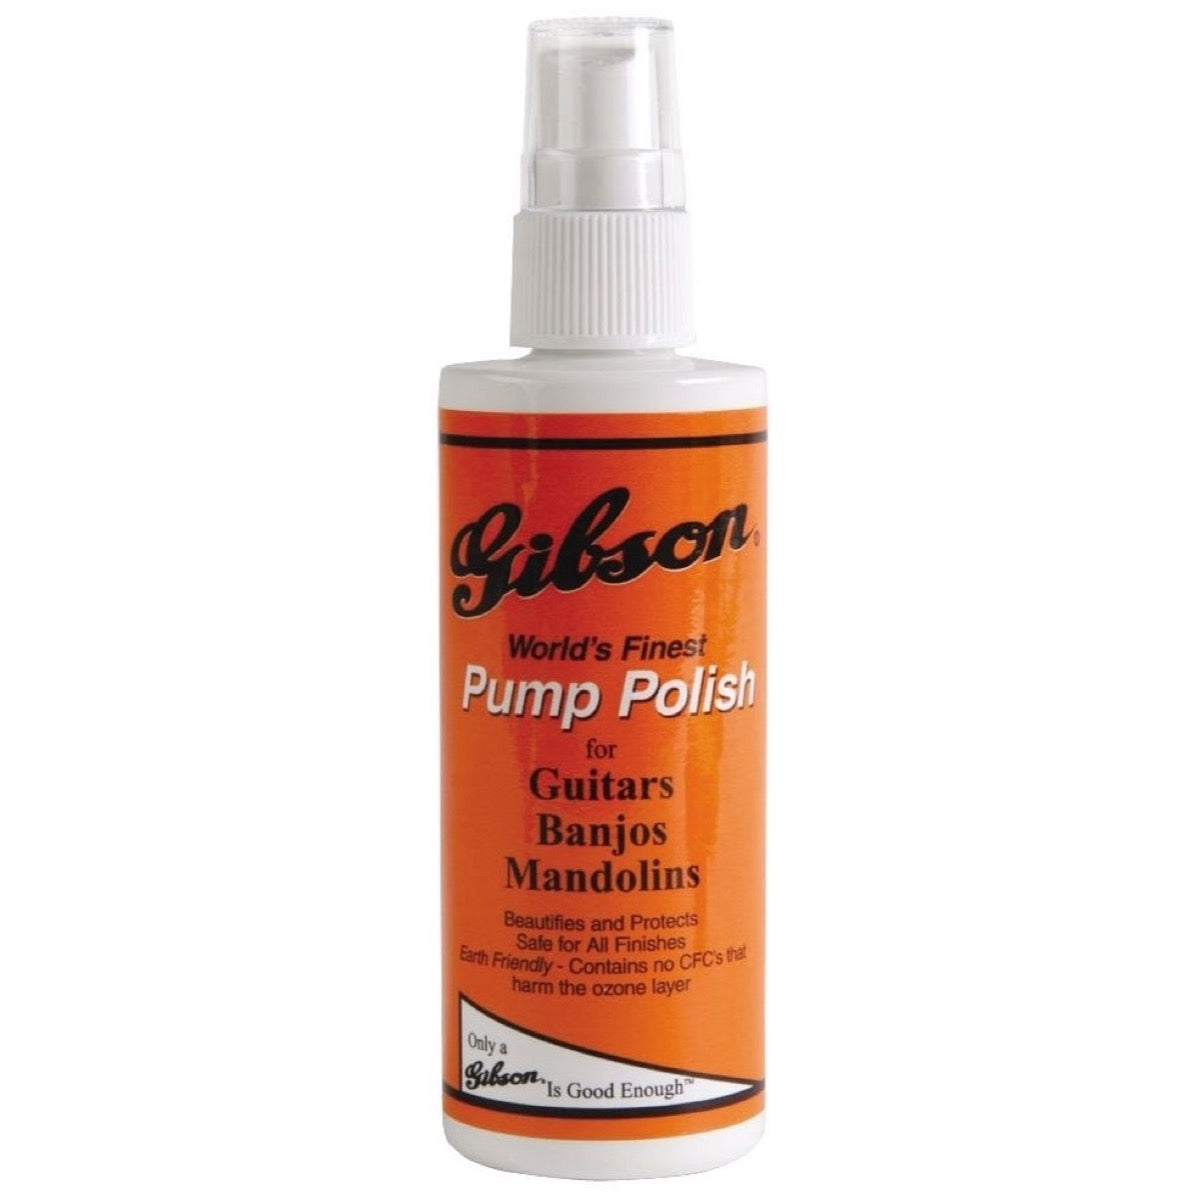 Gibson Guitar Pump Polish